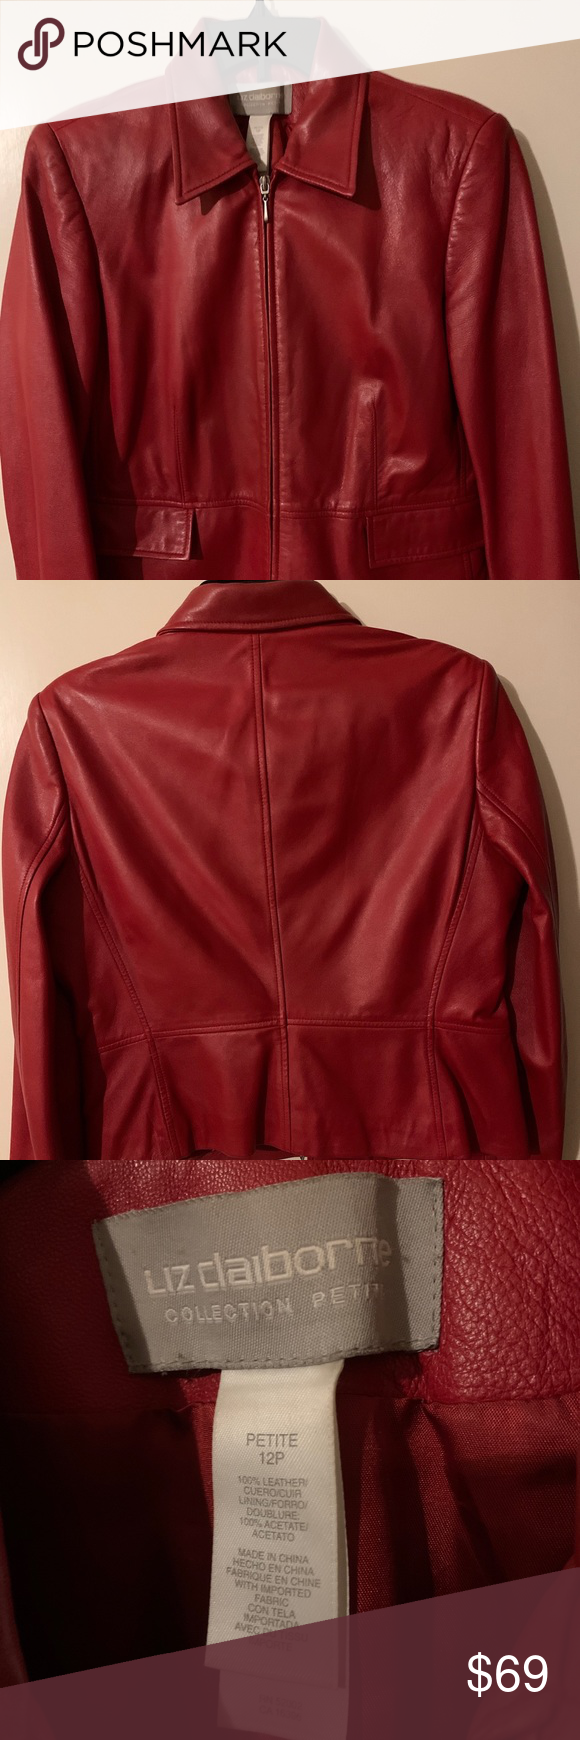 Genuine Red Leather Jacket Genuine Red Leather Jacket Is A Liz Claiborne Size 12p The Leather Feels Supple An Red Leather Jacket Clothes Design Leather Jacket